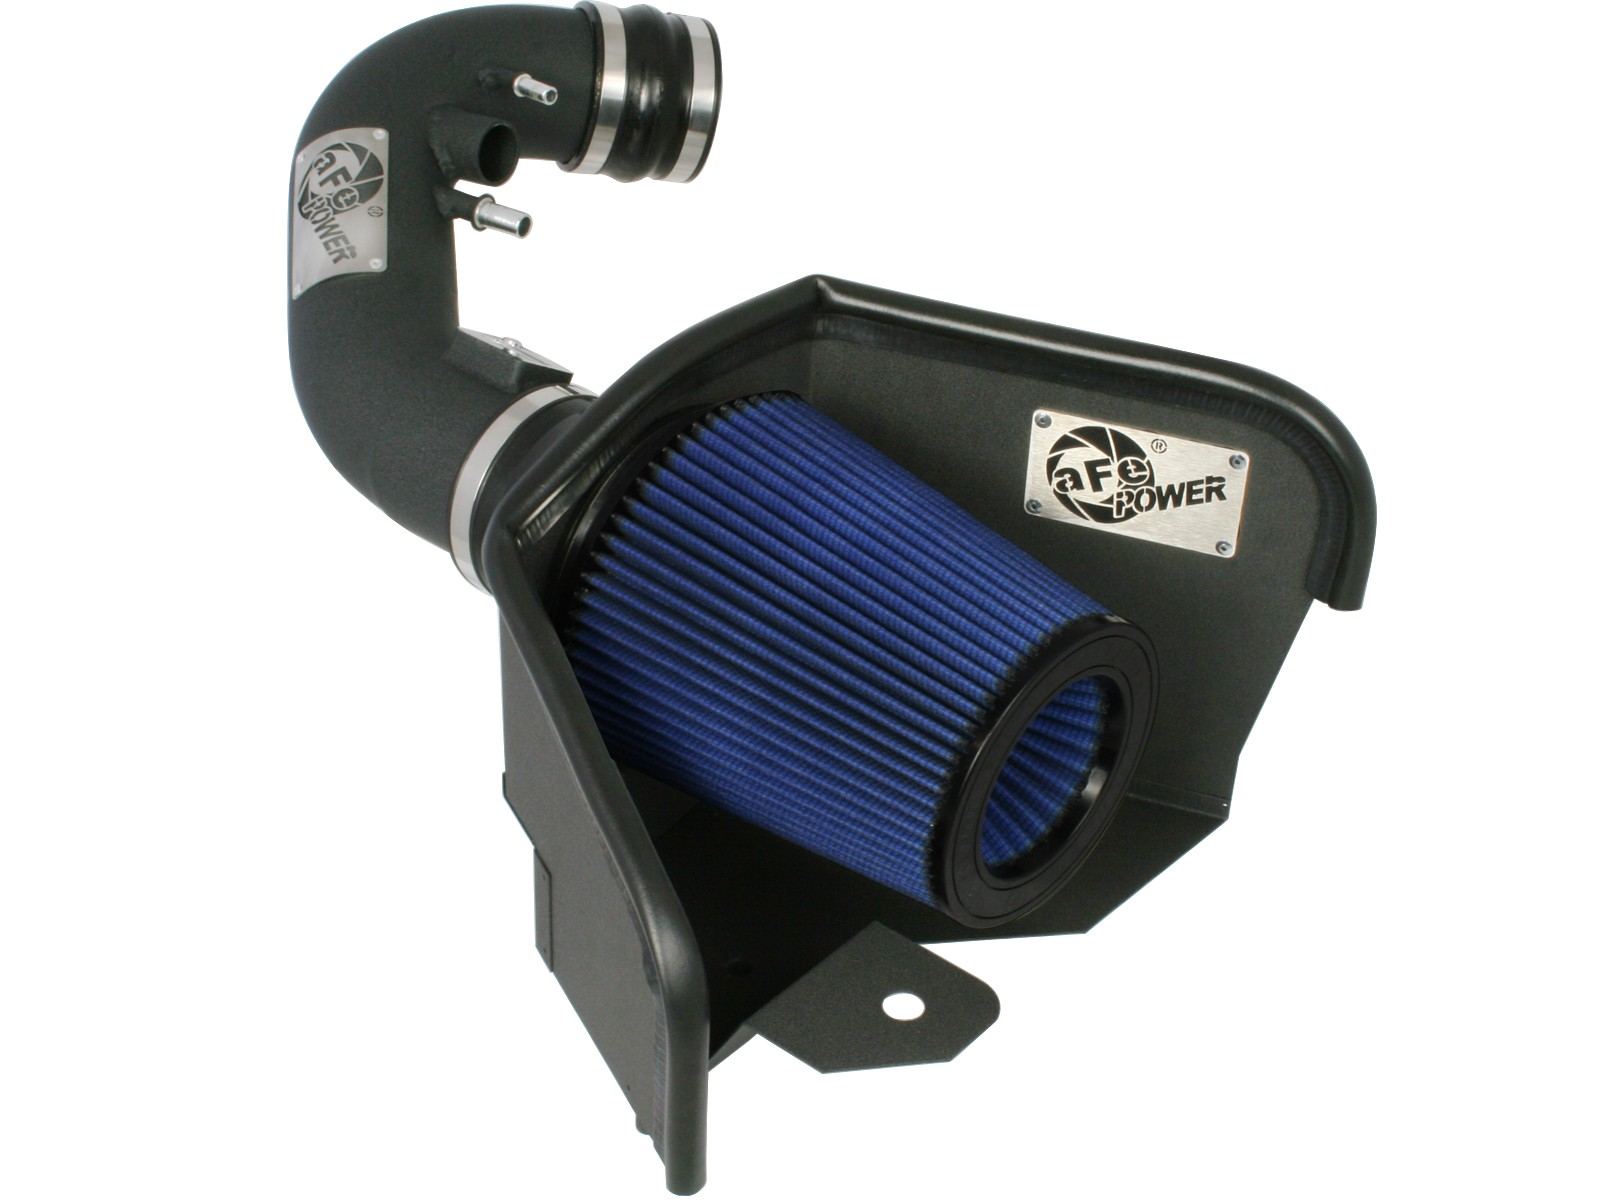 aFe POWER 54-11982-B Magnum FORCE Stage-2 Pro 5R Cold Air Intake System